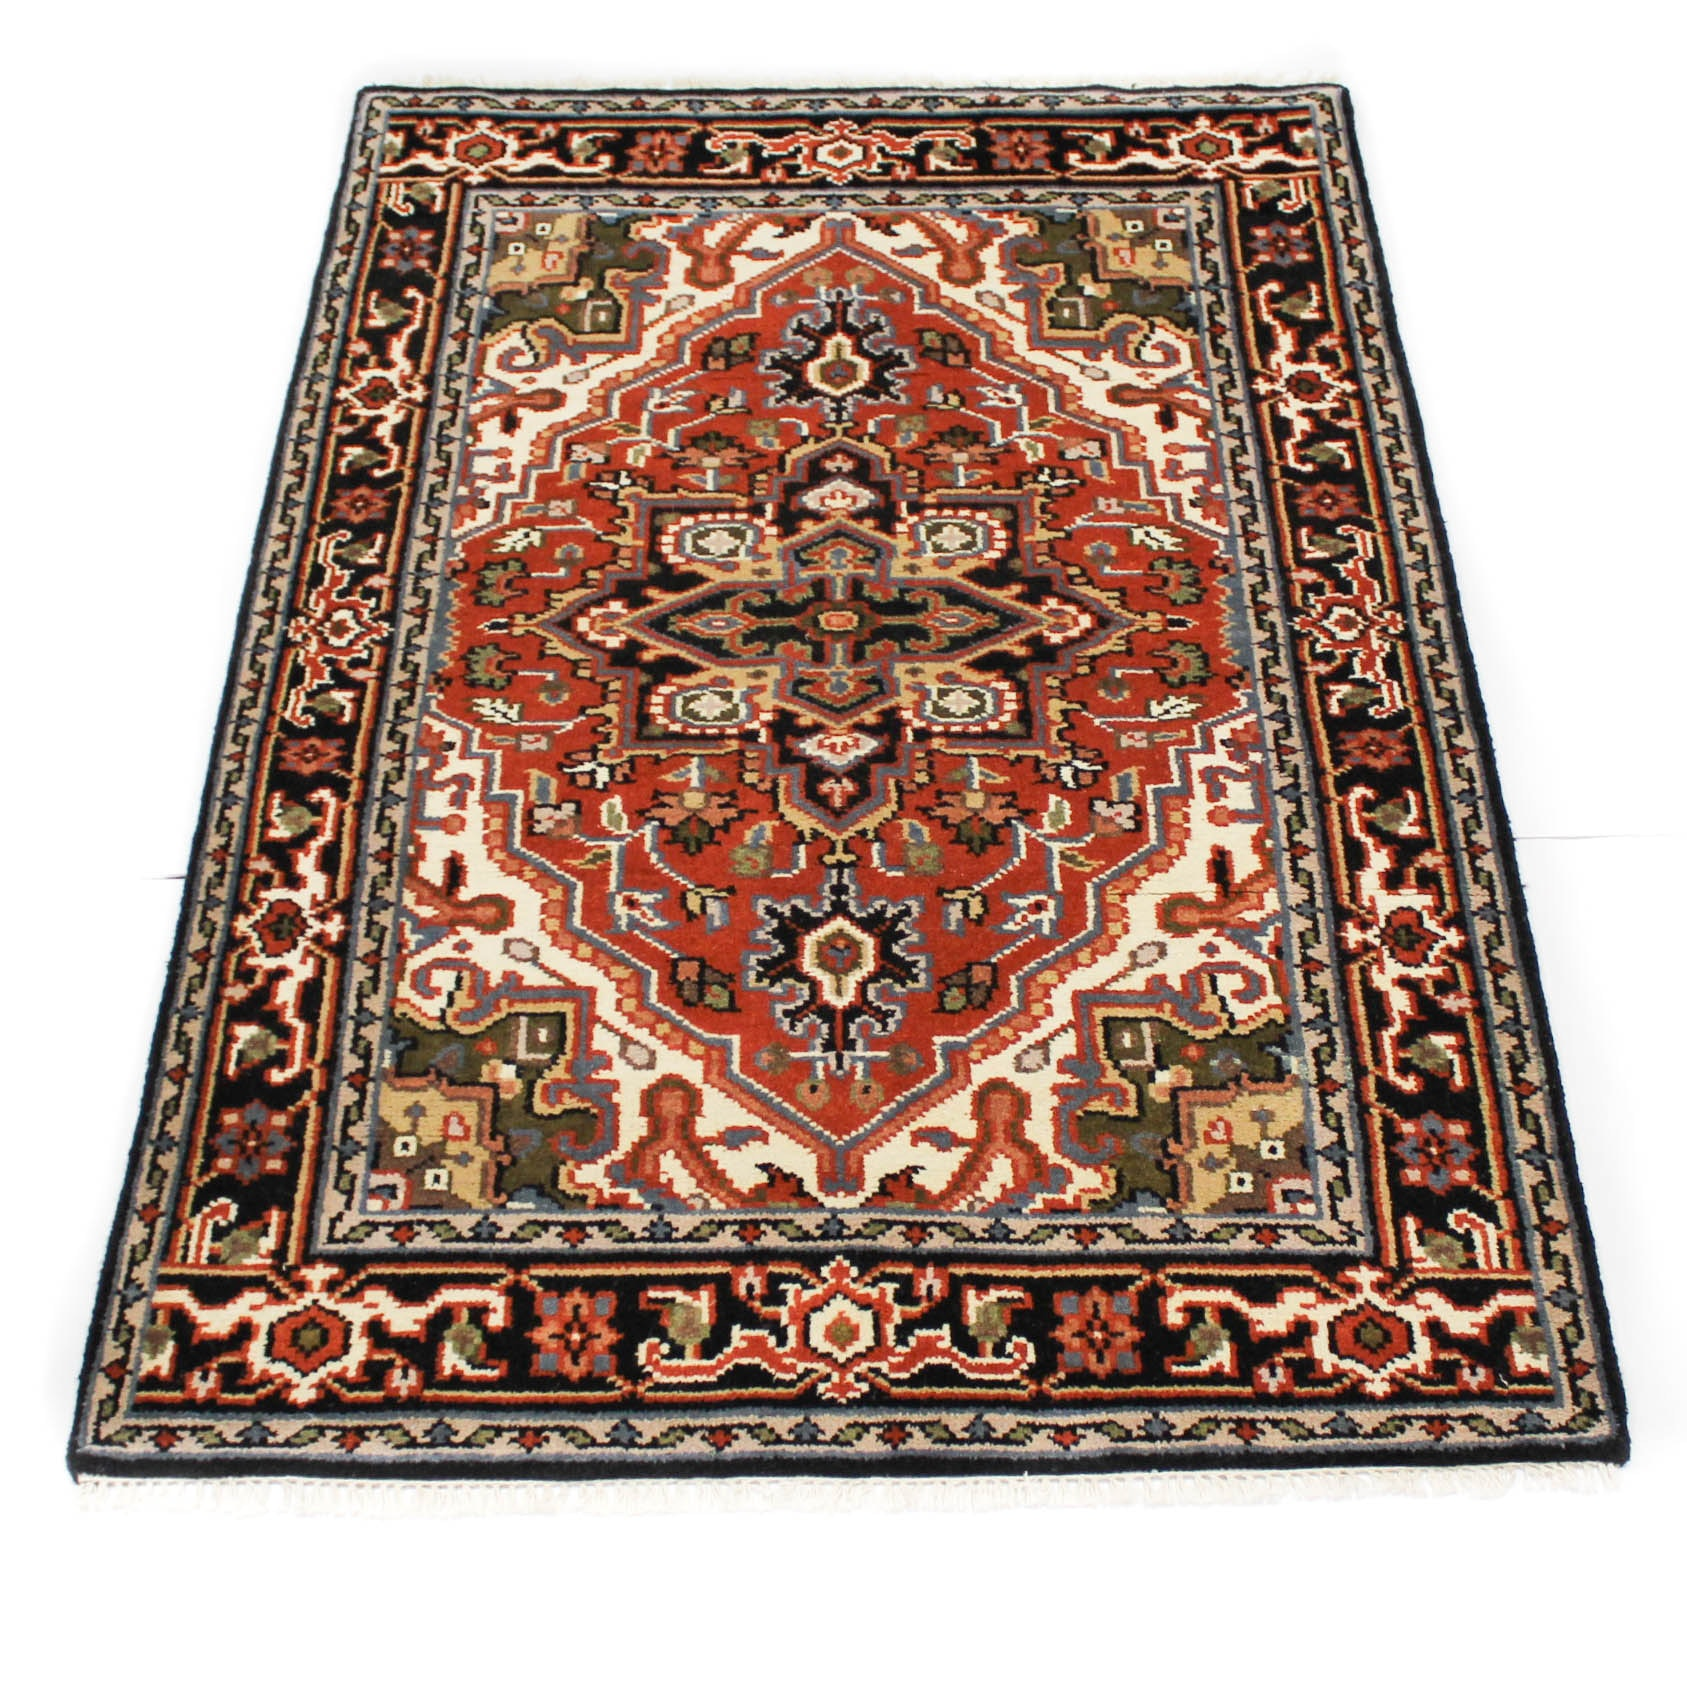 Fine Hand-Knotted Indo-Persian Heriz Rug